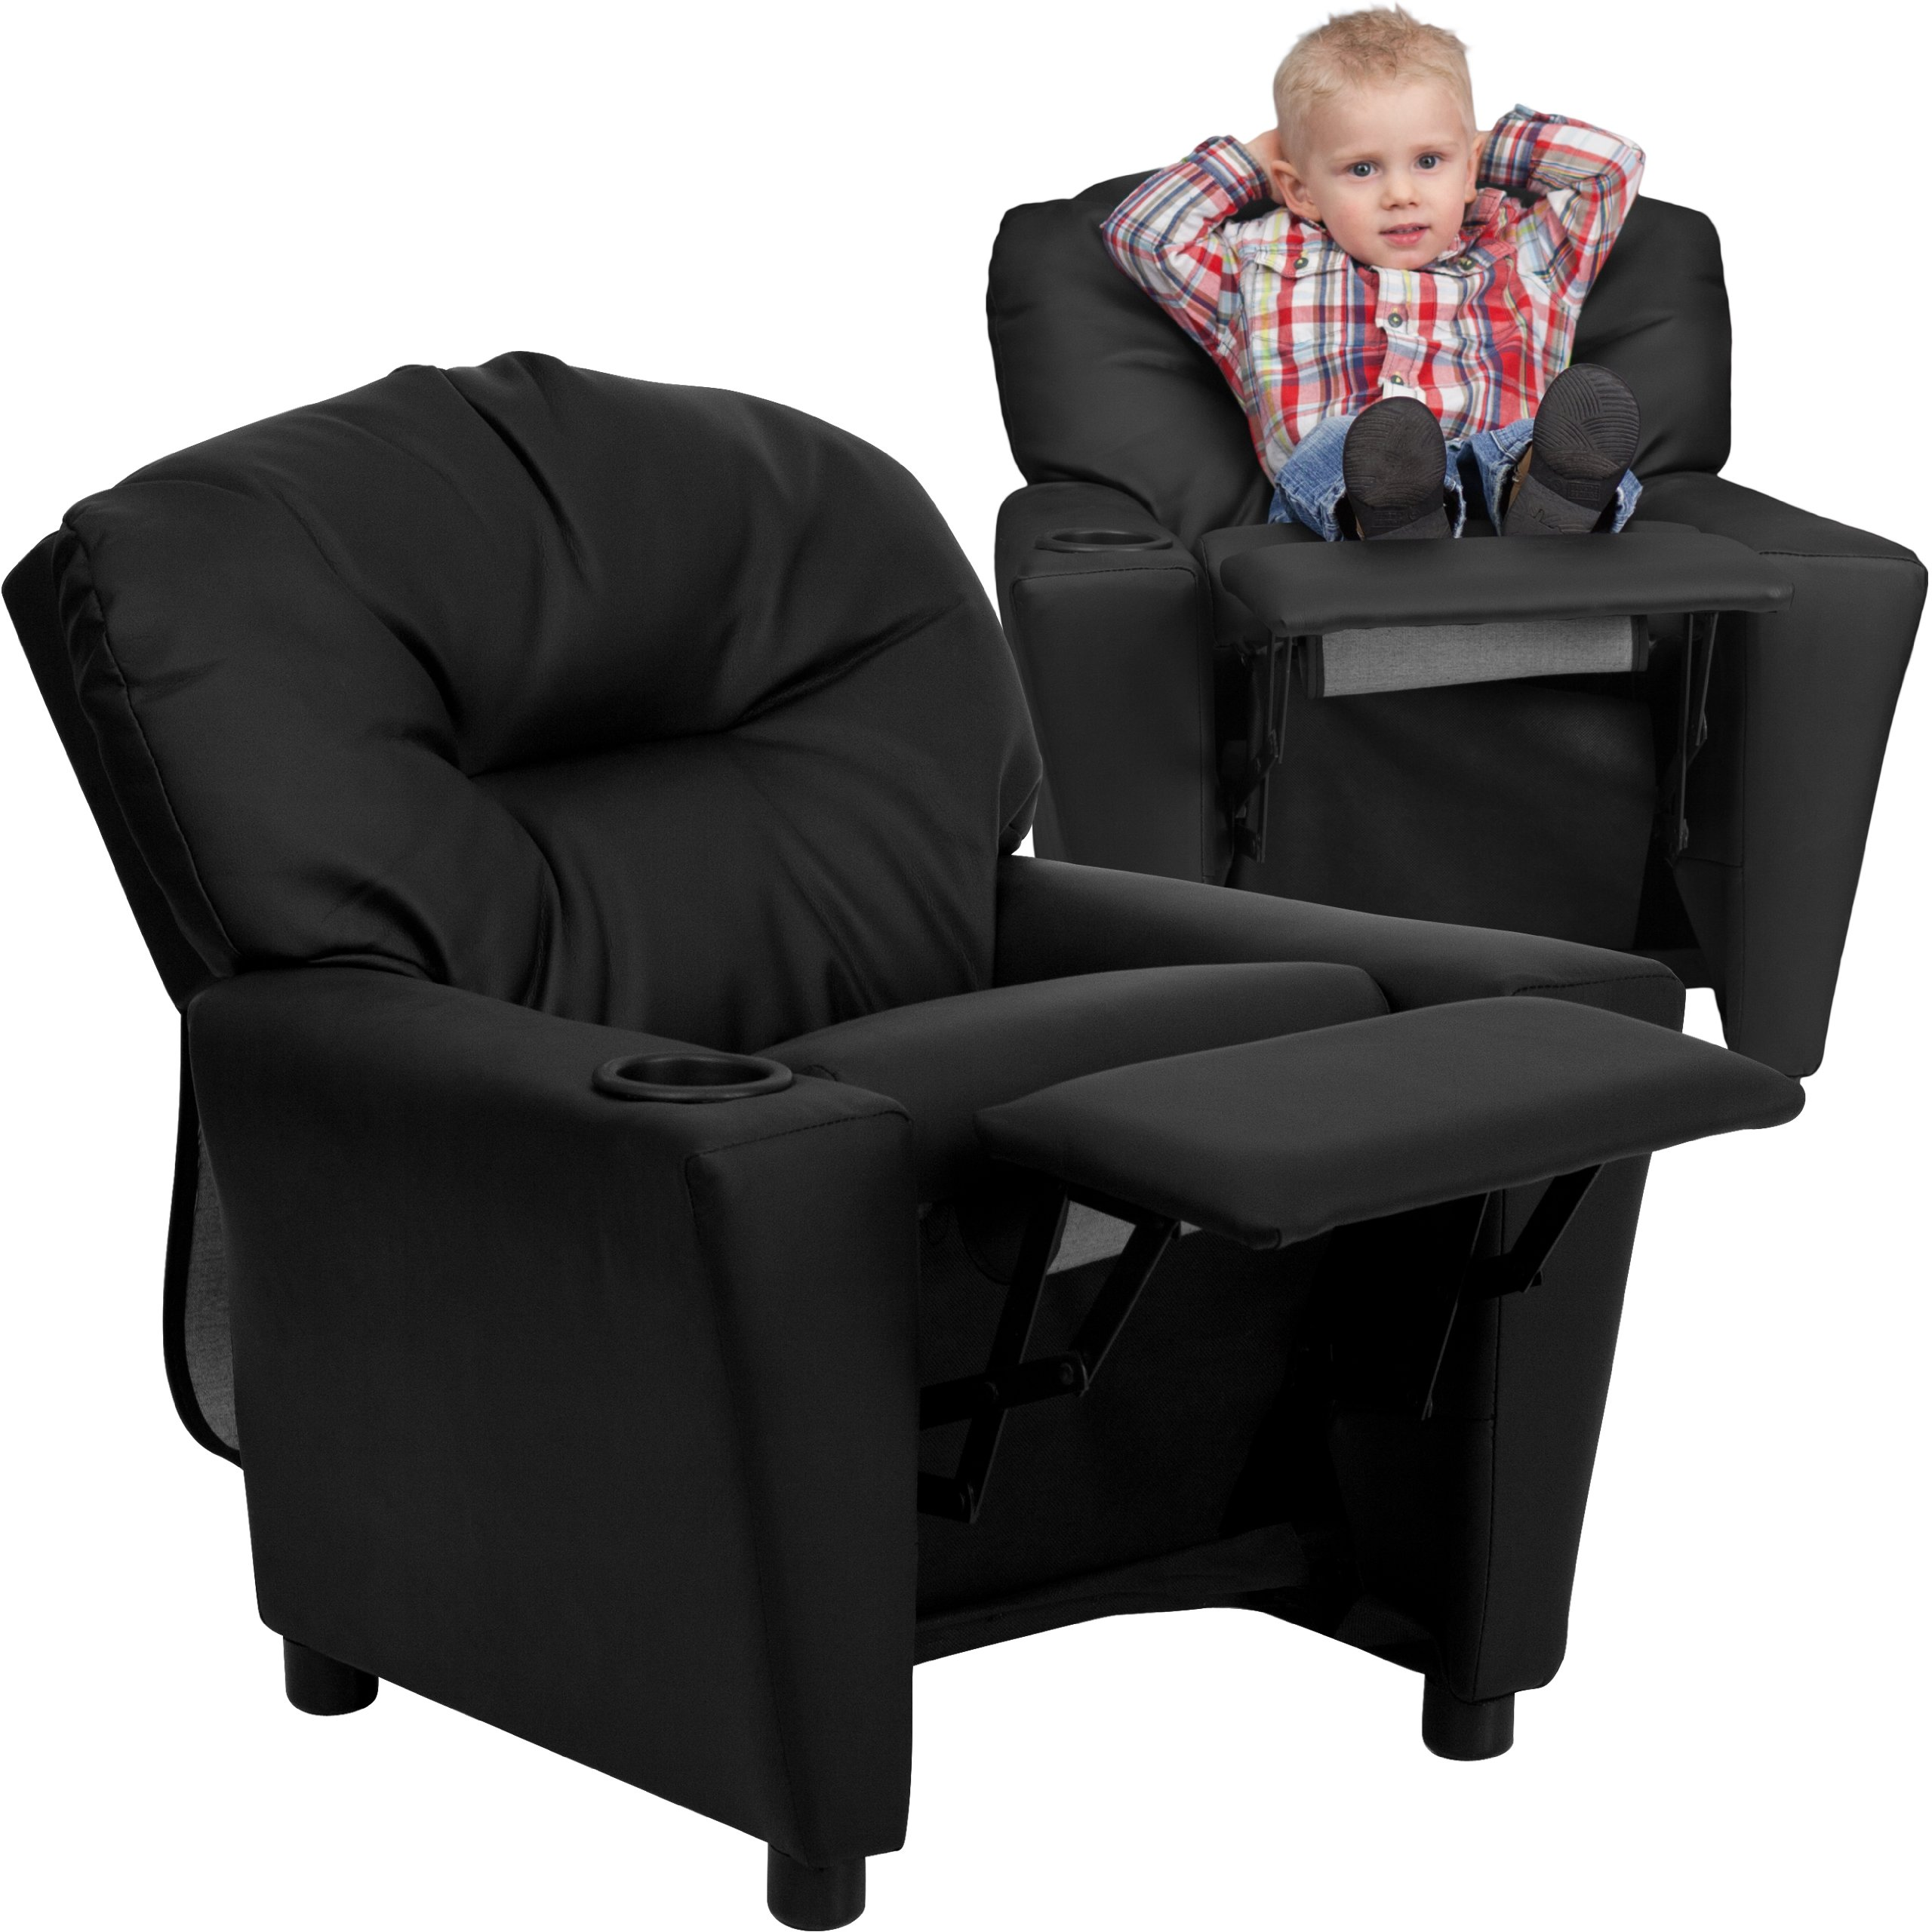 MFO Contemporary Black Leather Kids Recliner with Cup Holder